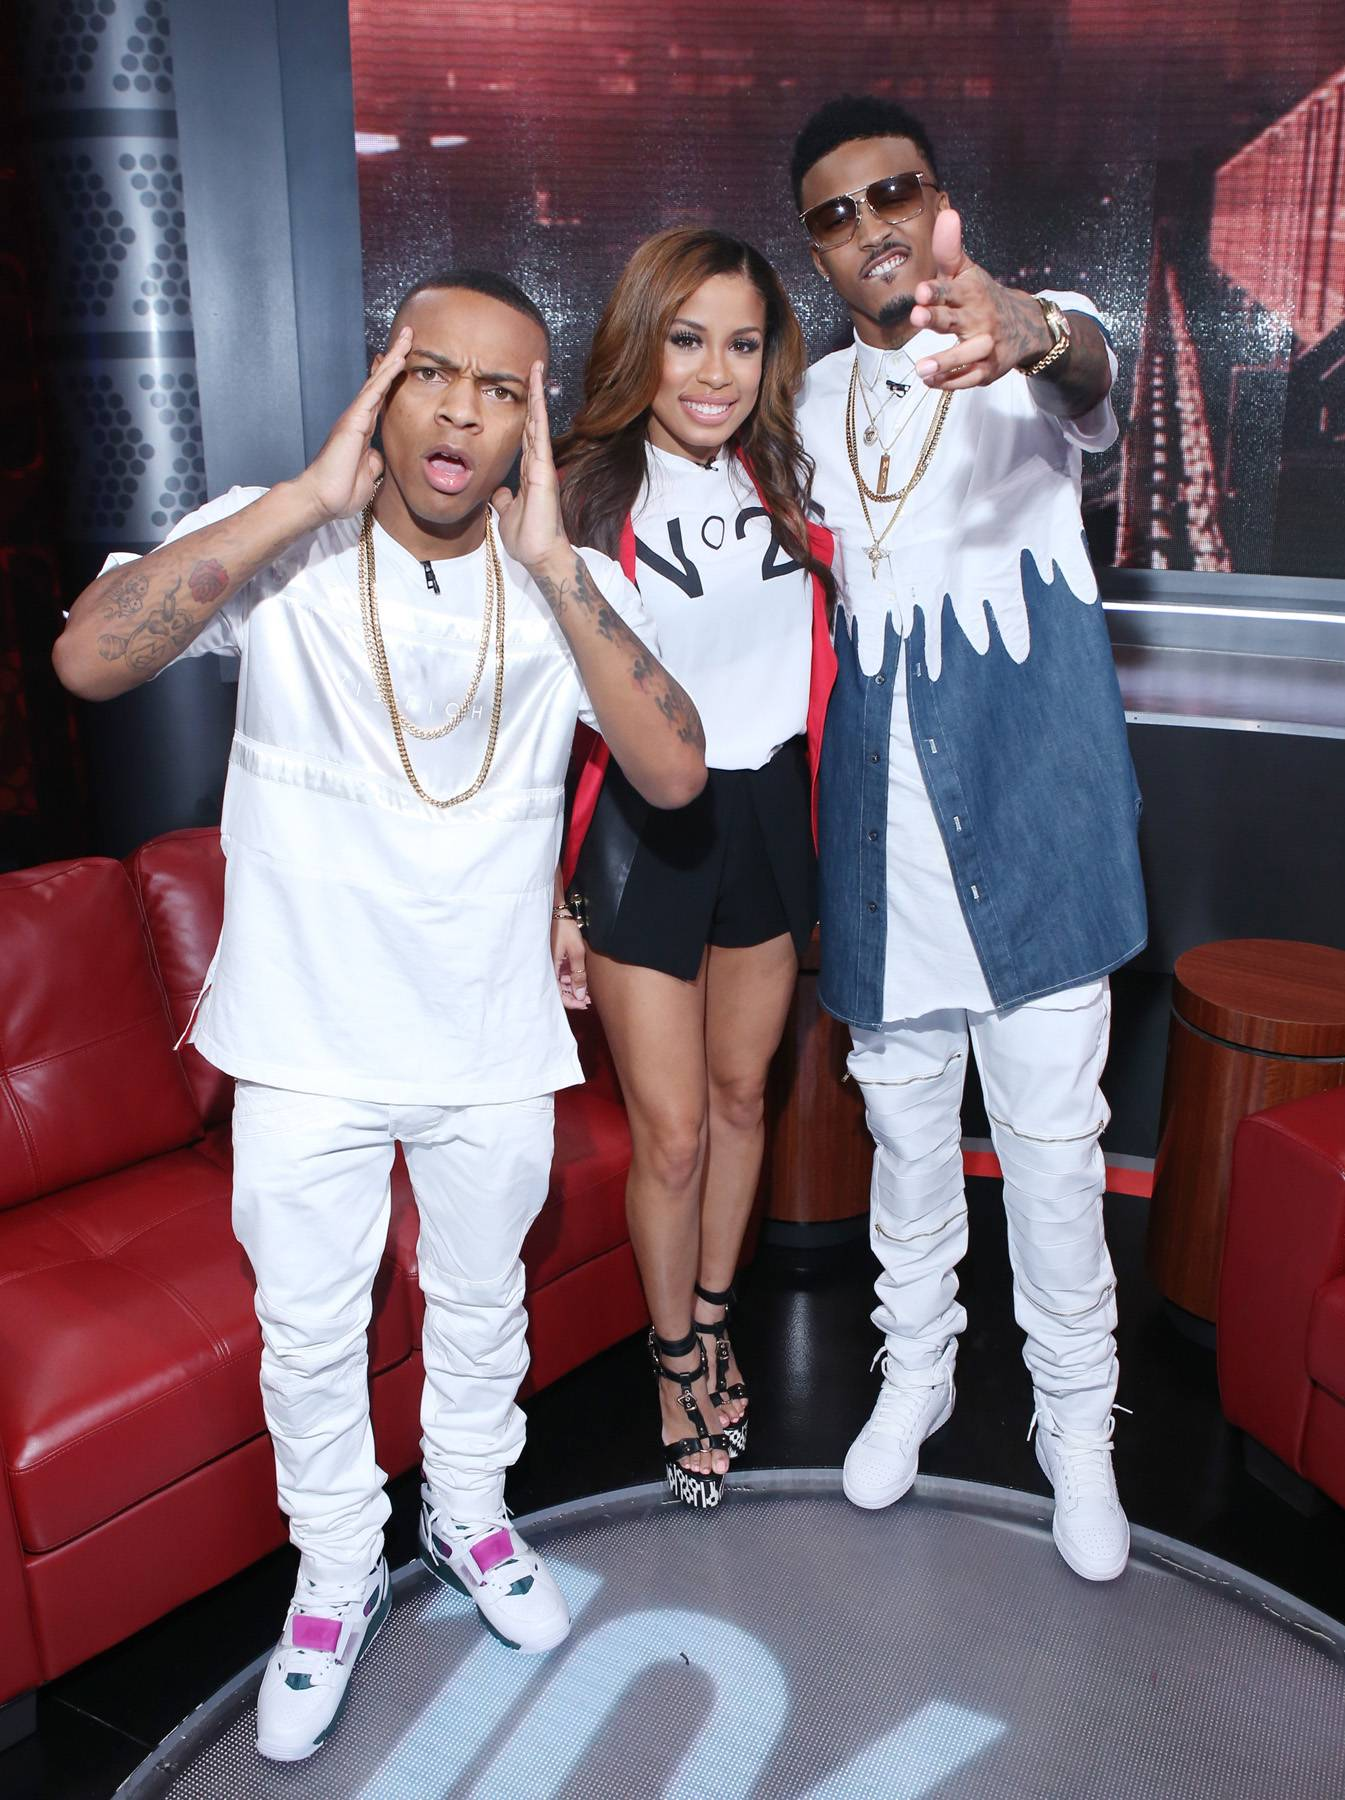 Epic Music Team - Shad Moss, Keshia Chante, and August Alsina attend 106 & Park at BET studio on September 15, 2014 in New York City. (Photo: Bennett Raglin/BET/Getty Images for BET)